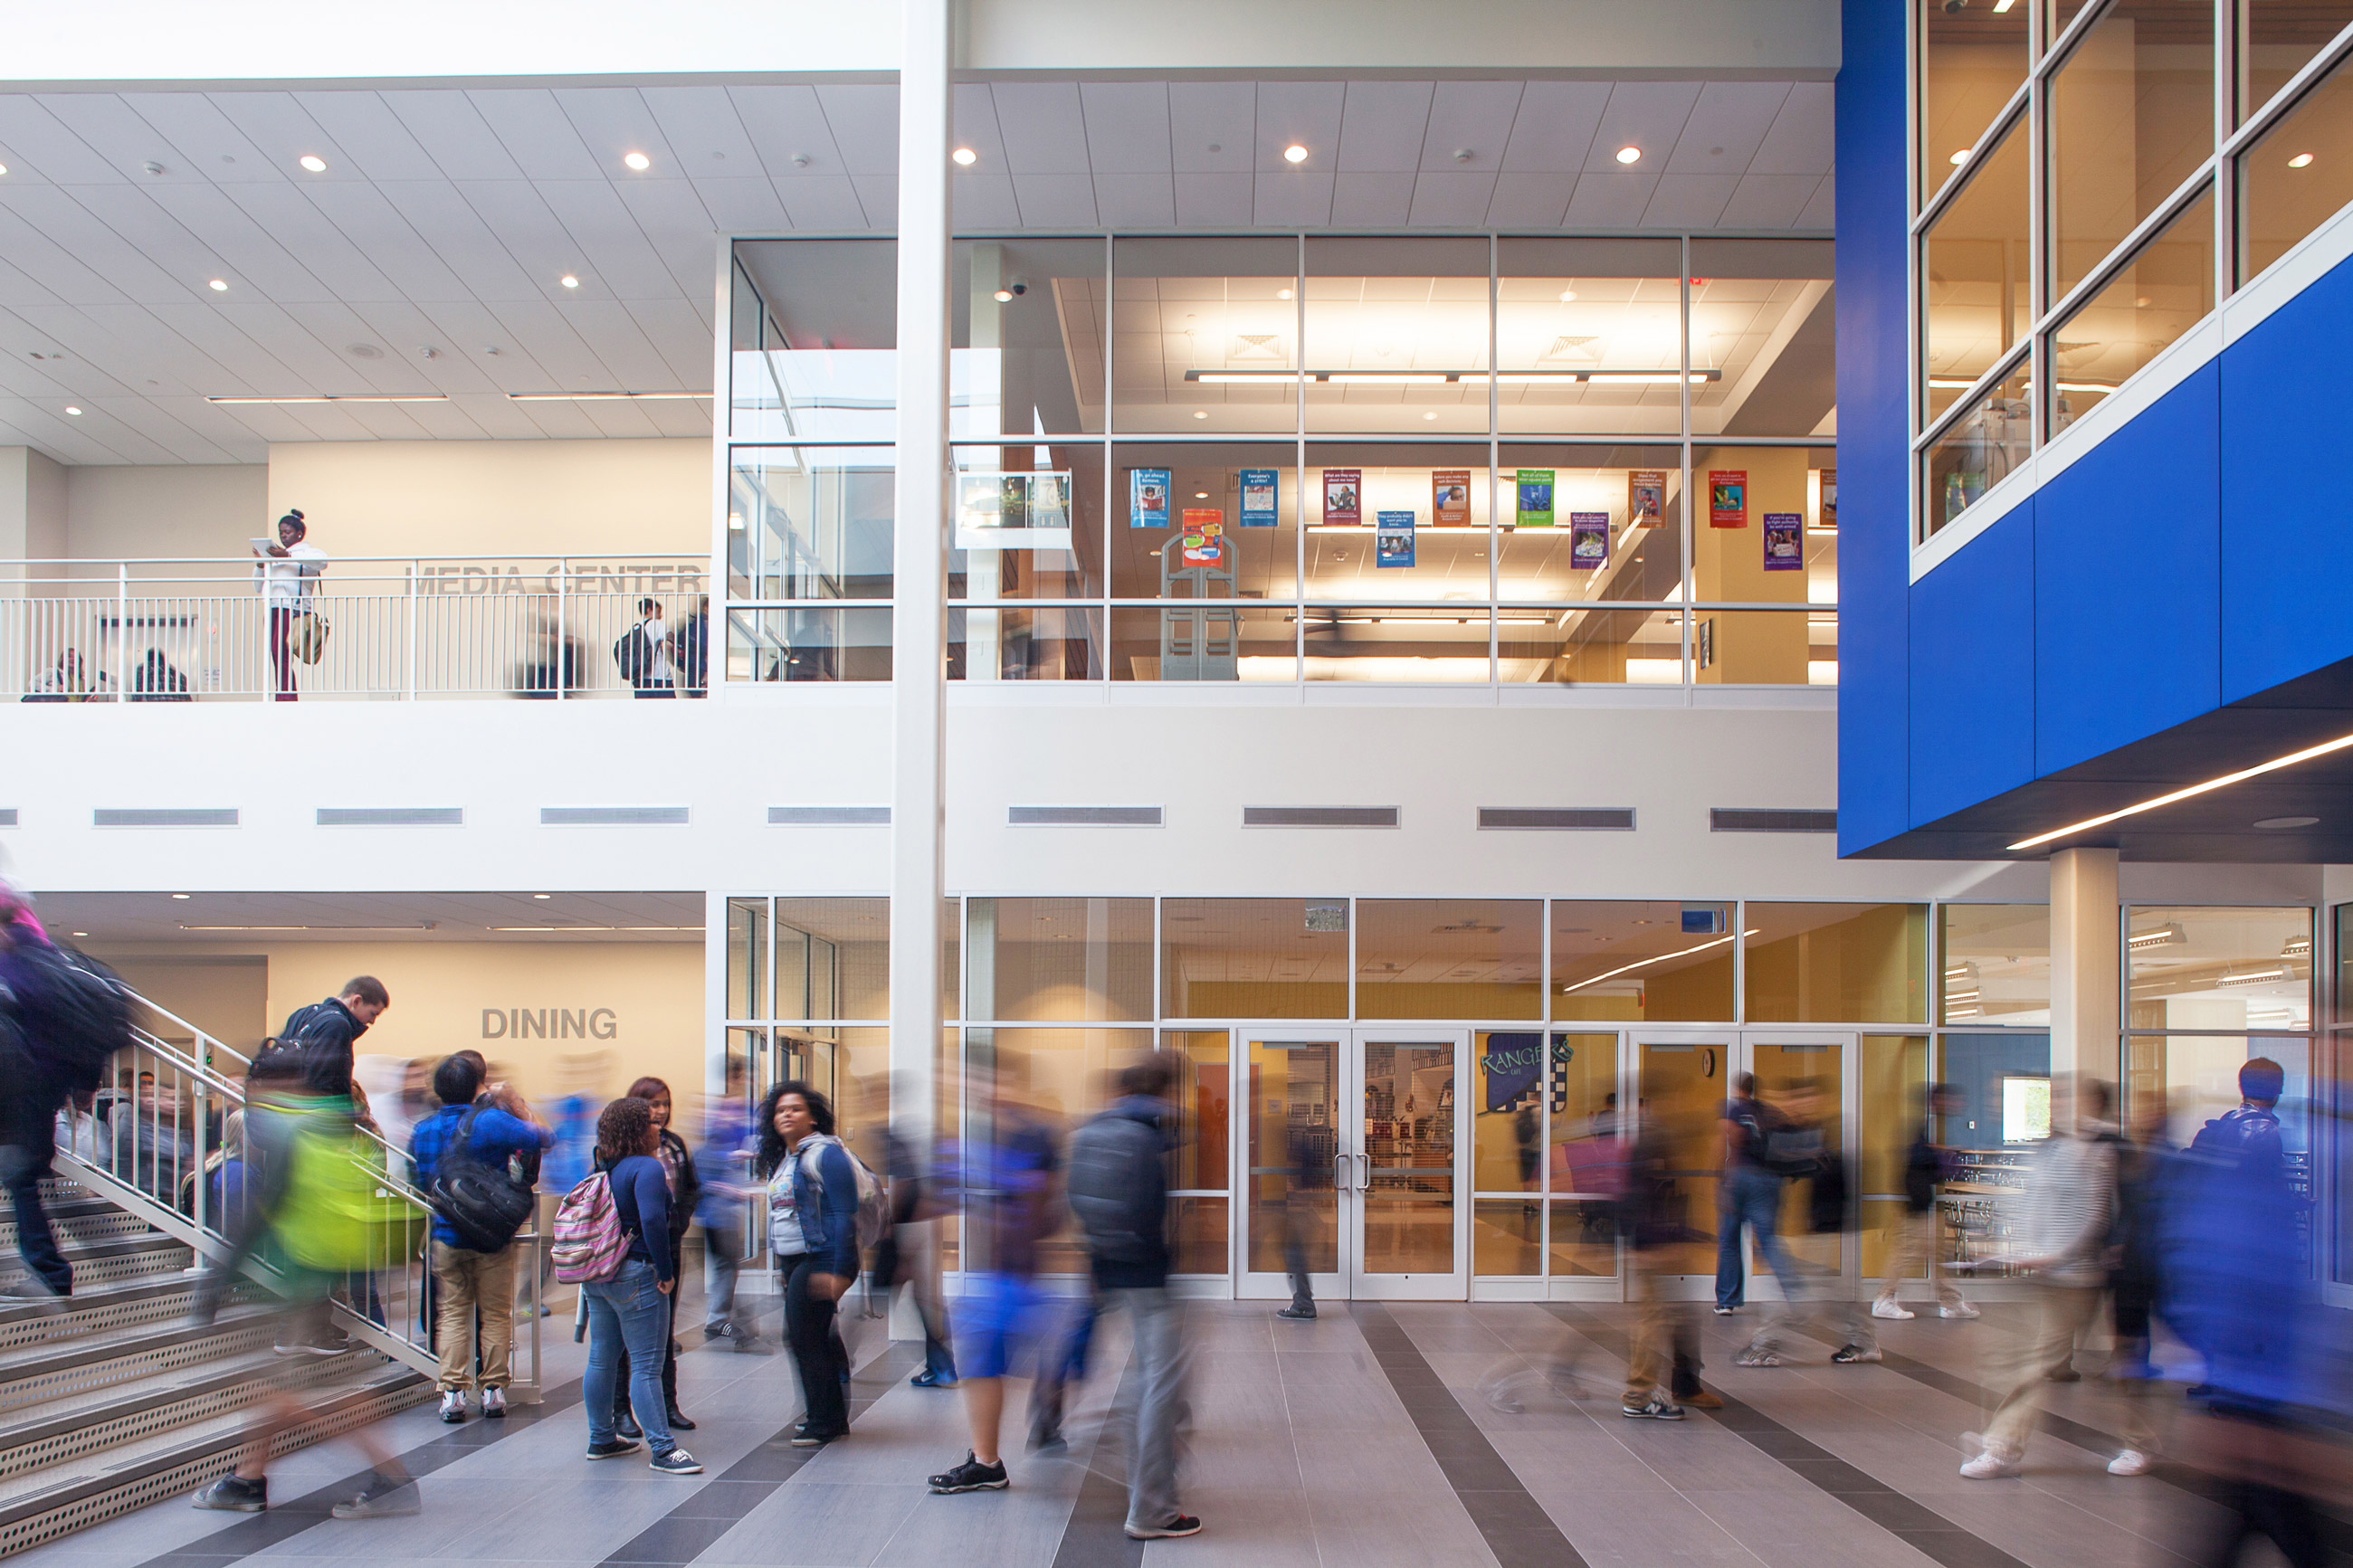 High school students walking and standing in the double-height entrance foyer of Methuen High School, in front of the dining area and the media center.